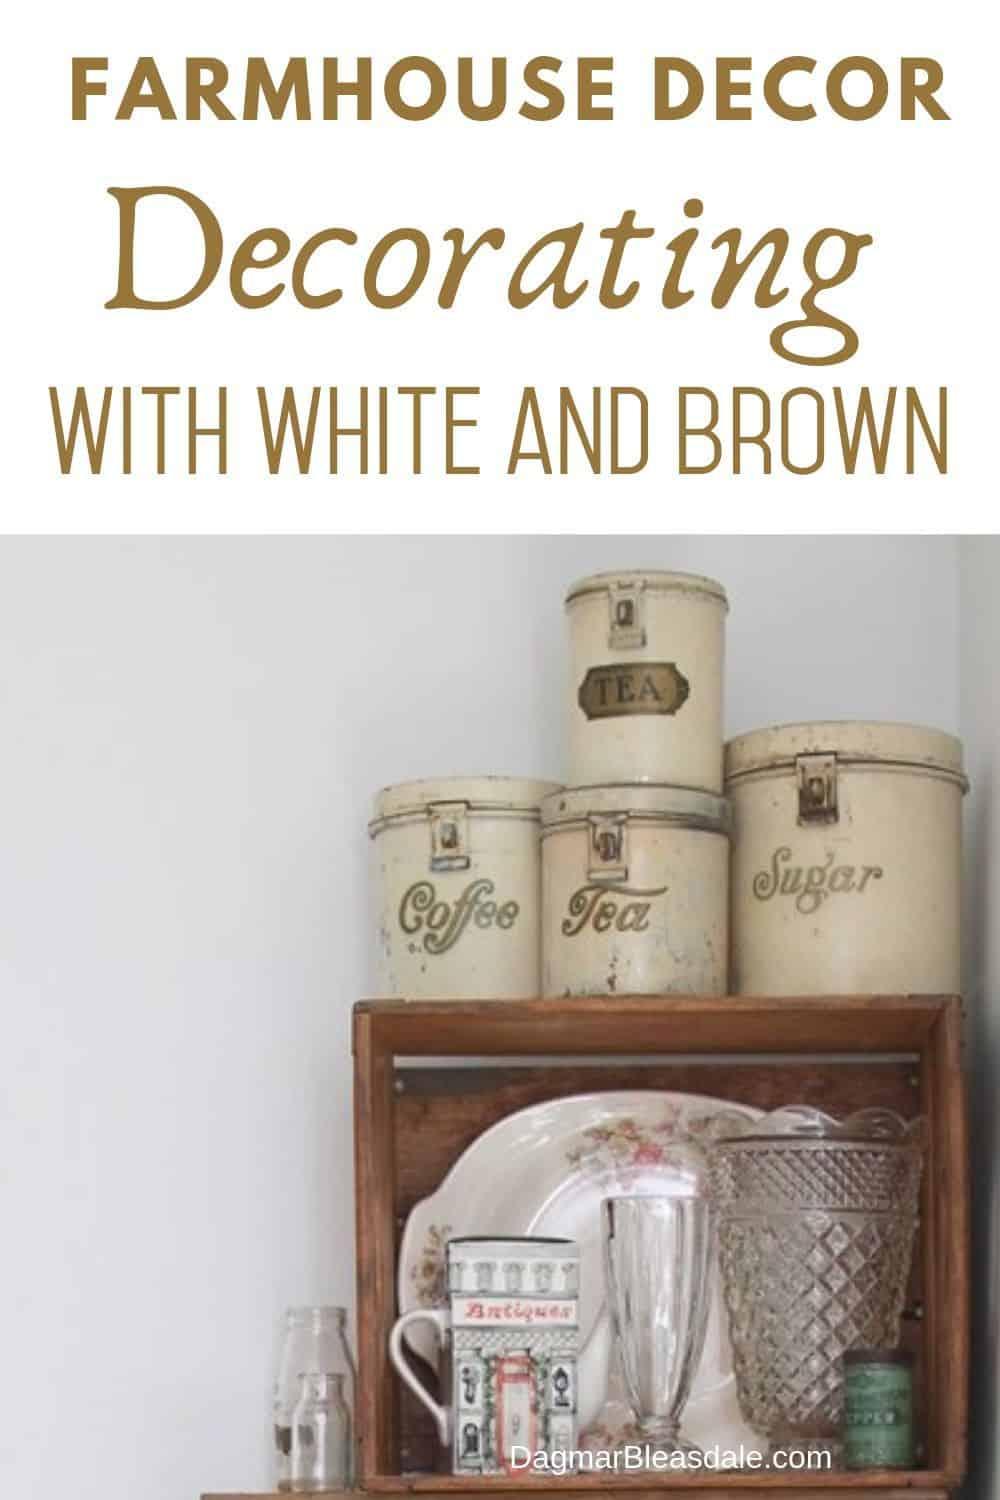 decorating with white and brown